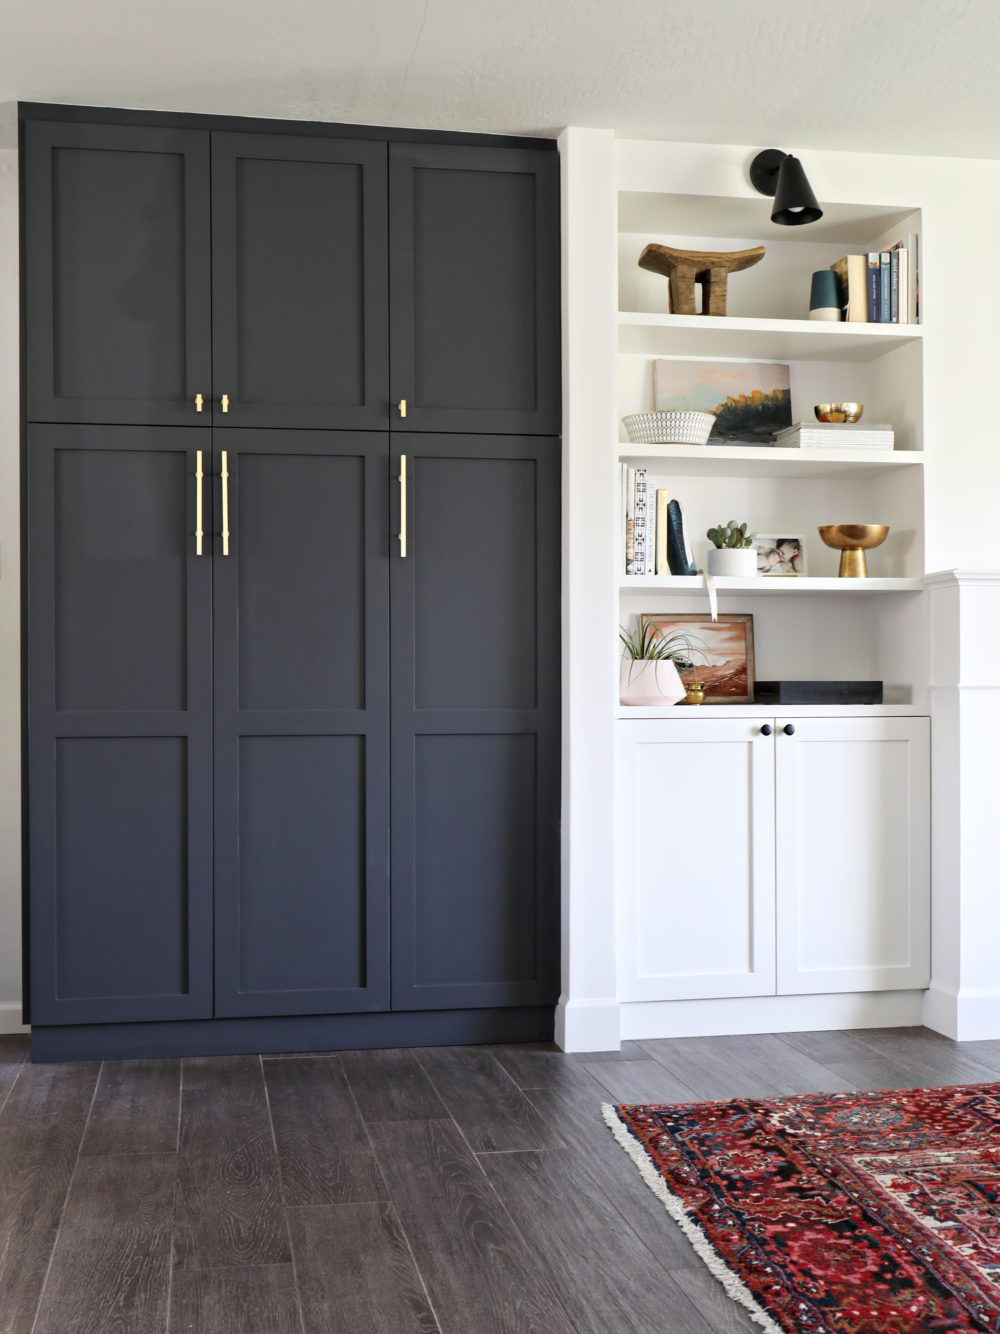 Attirant Paint Color   Cyberspace By Sherwin Williams. IKEA PAX Cabinets With Shaker  Doors By Semihomemade